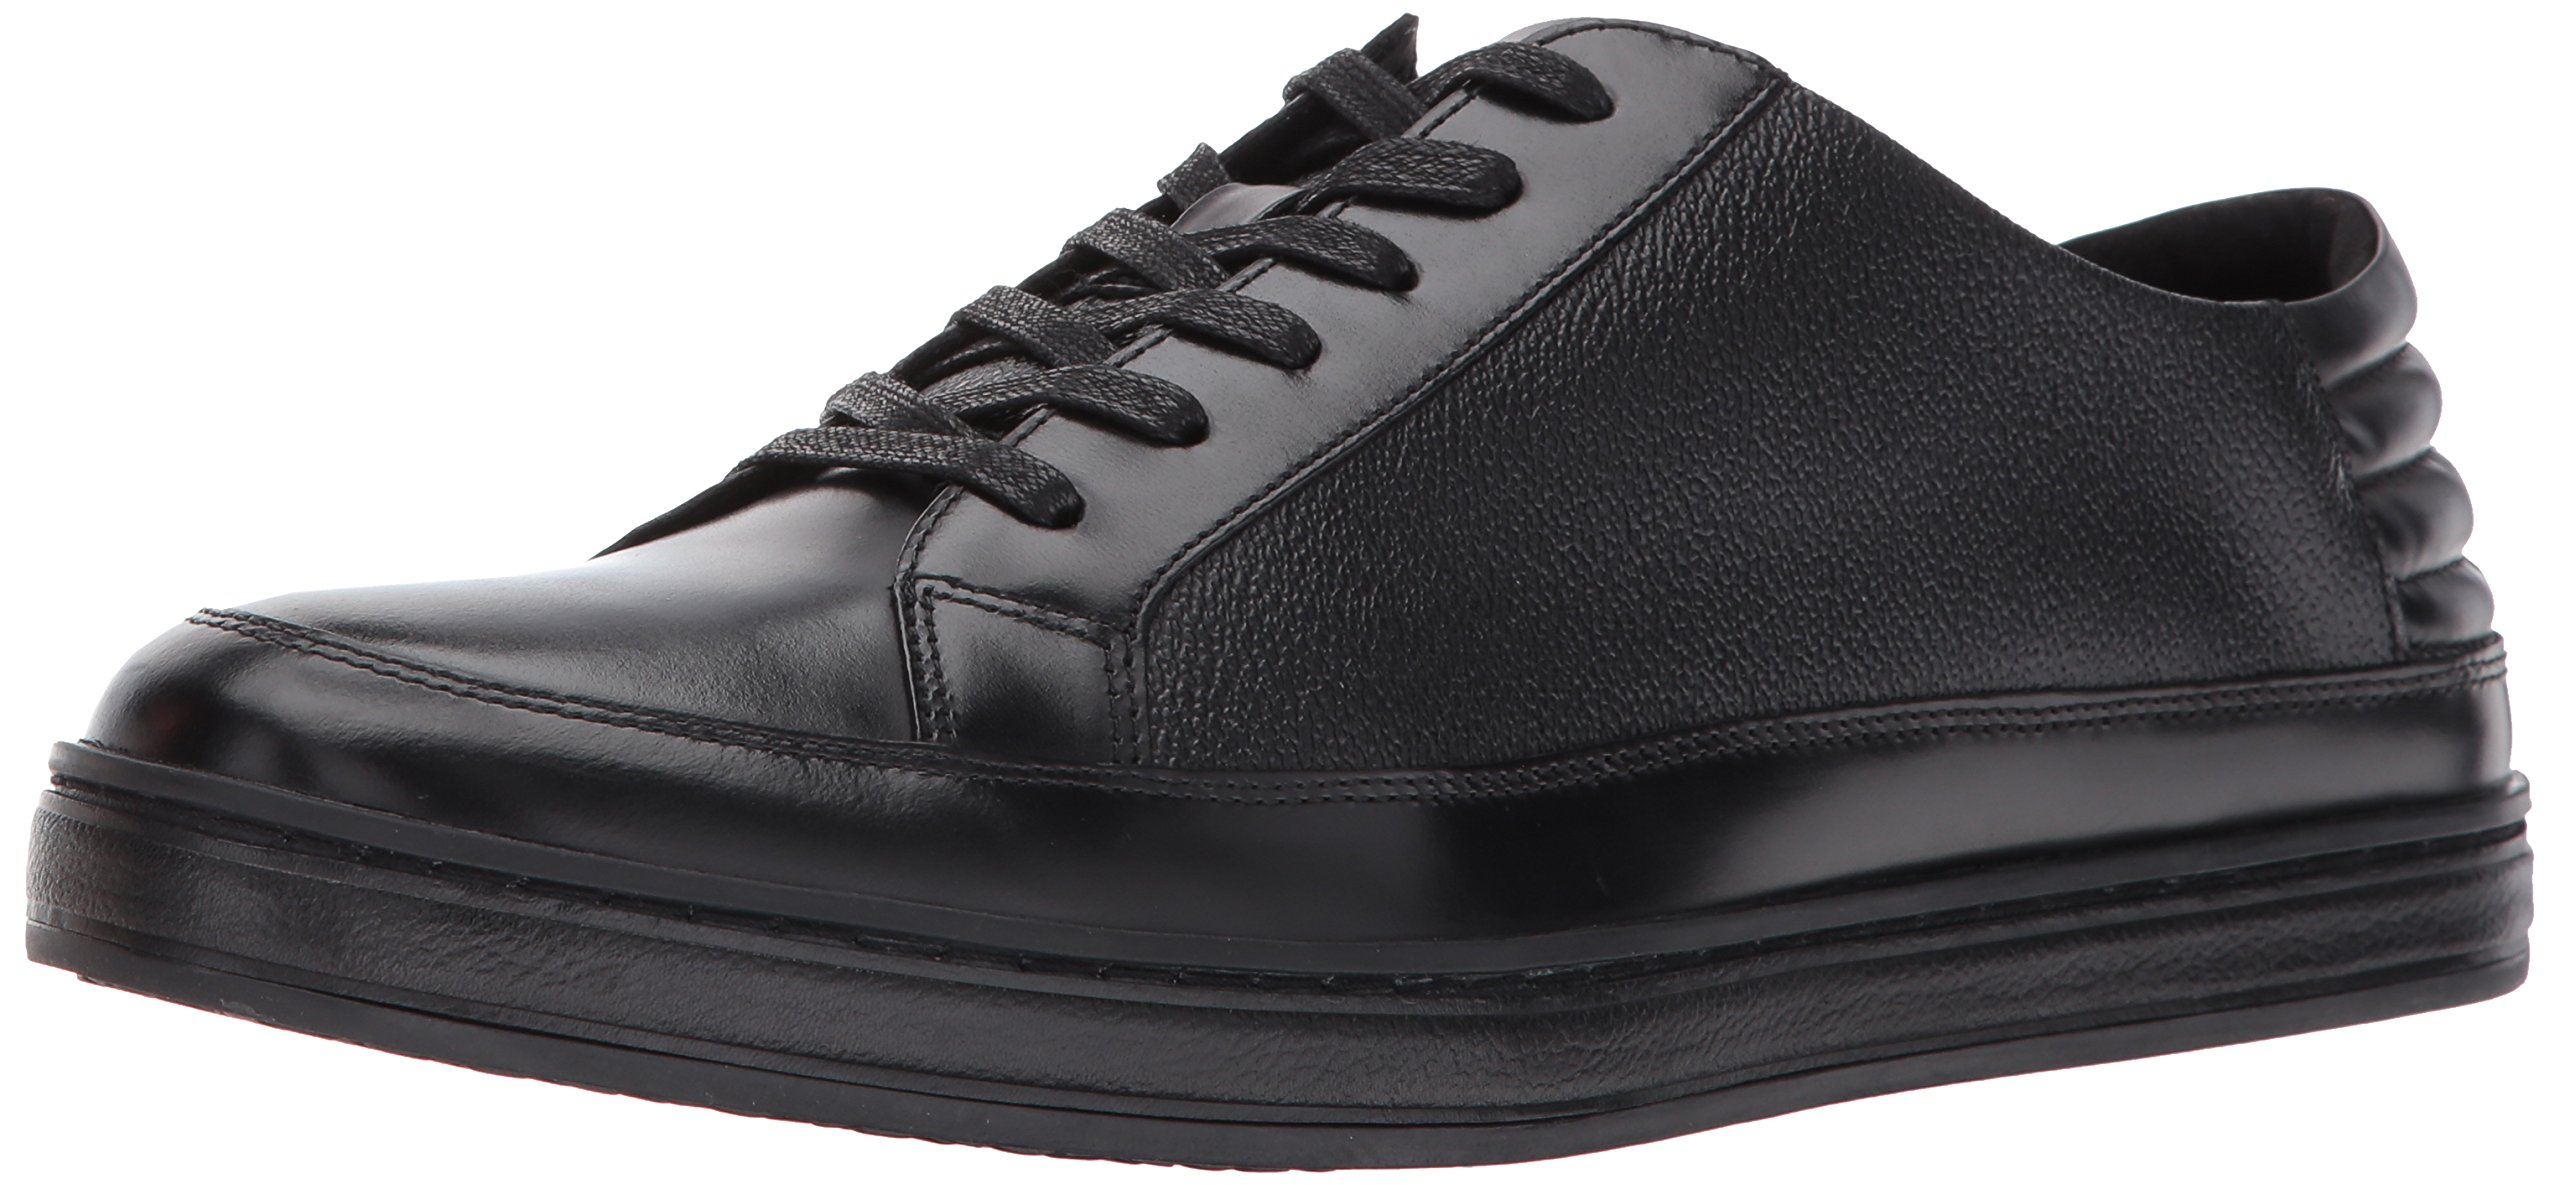 Kenneth Cole New York Men's Brand Stand Fashion Sneaker, Black, 11 M US